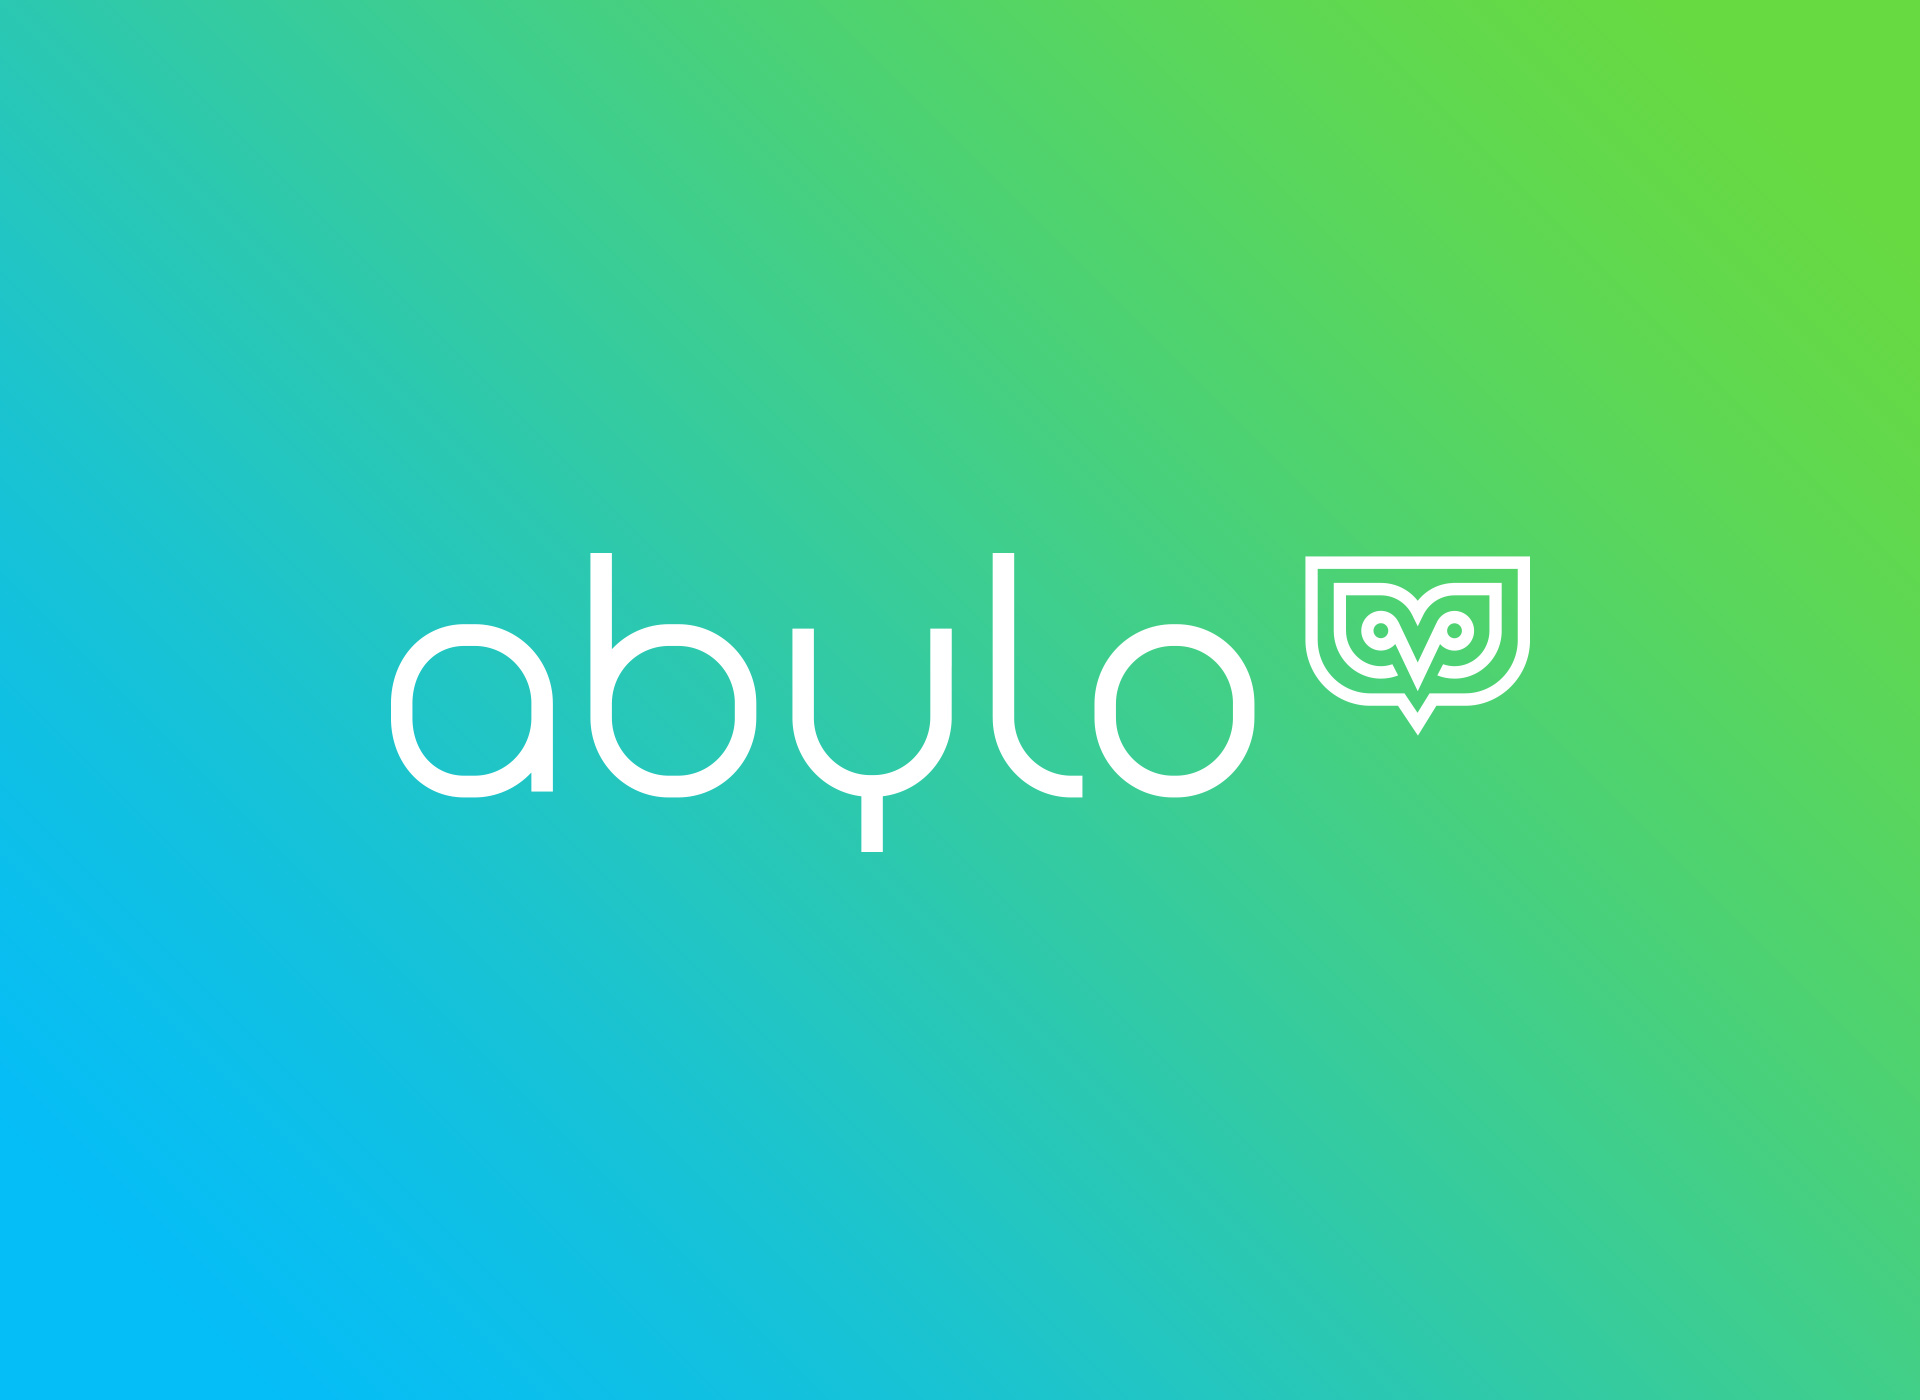 Abylo